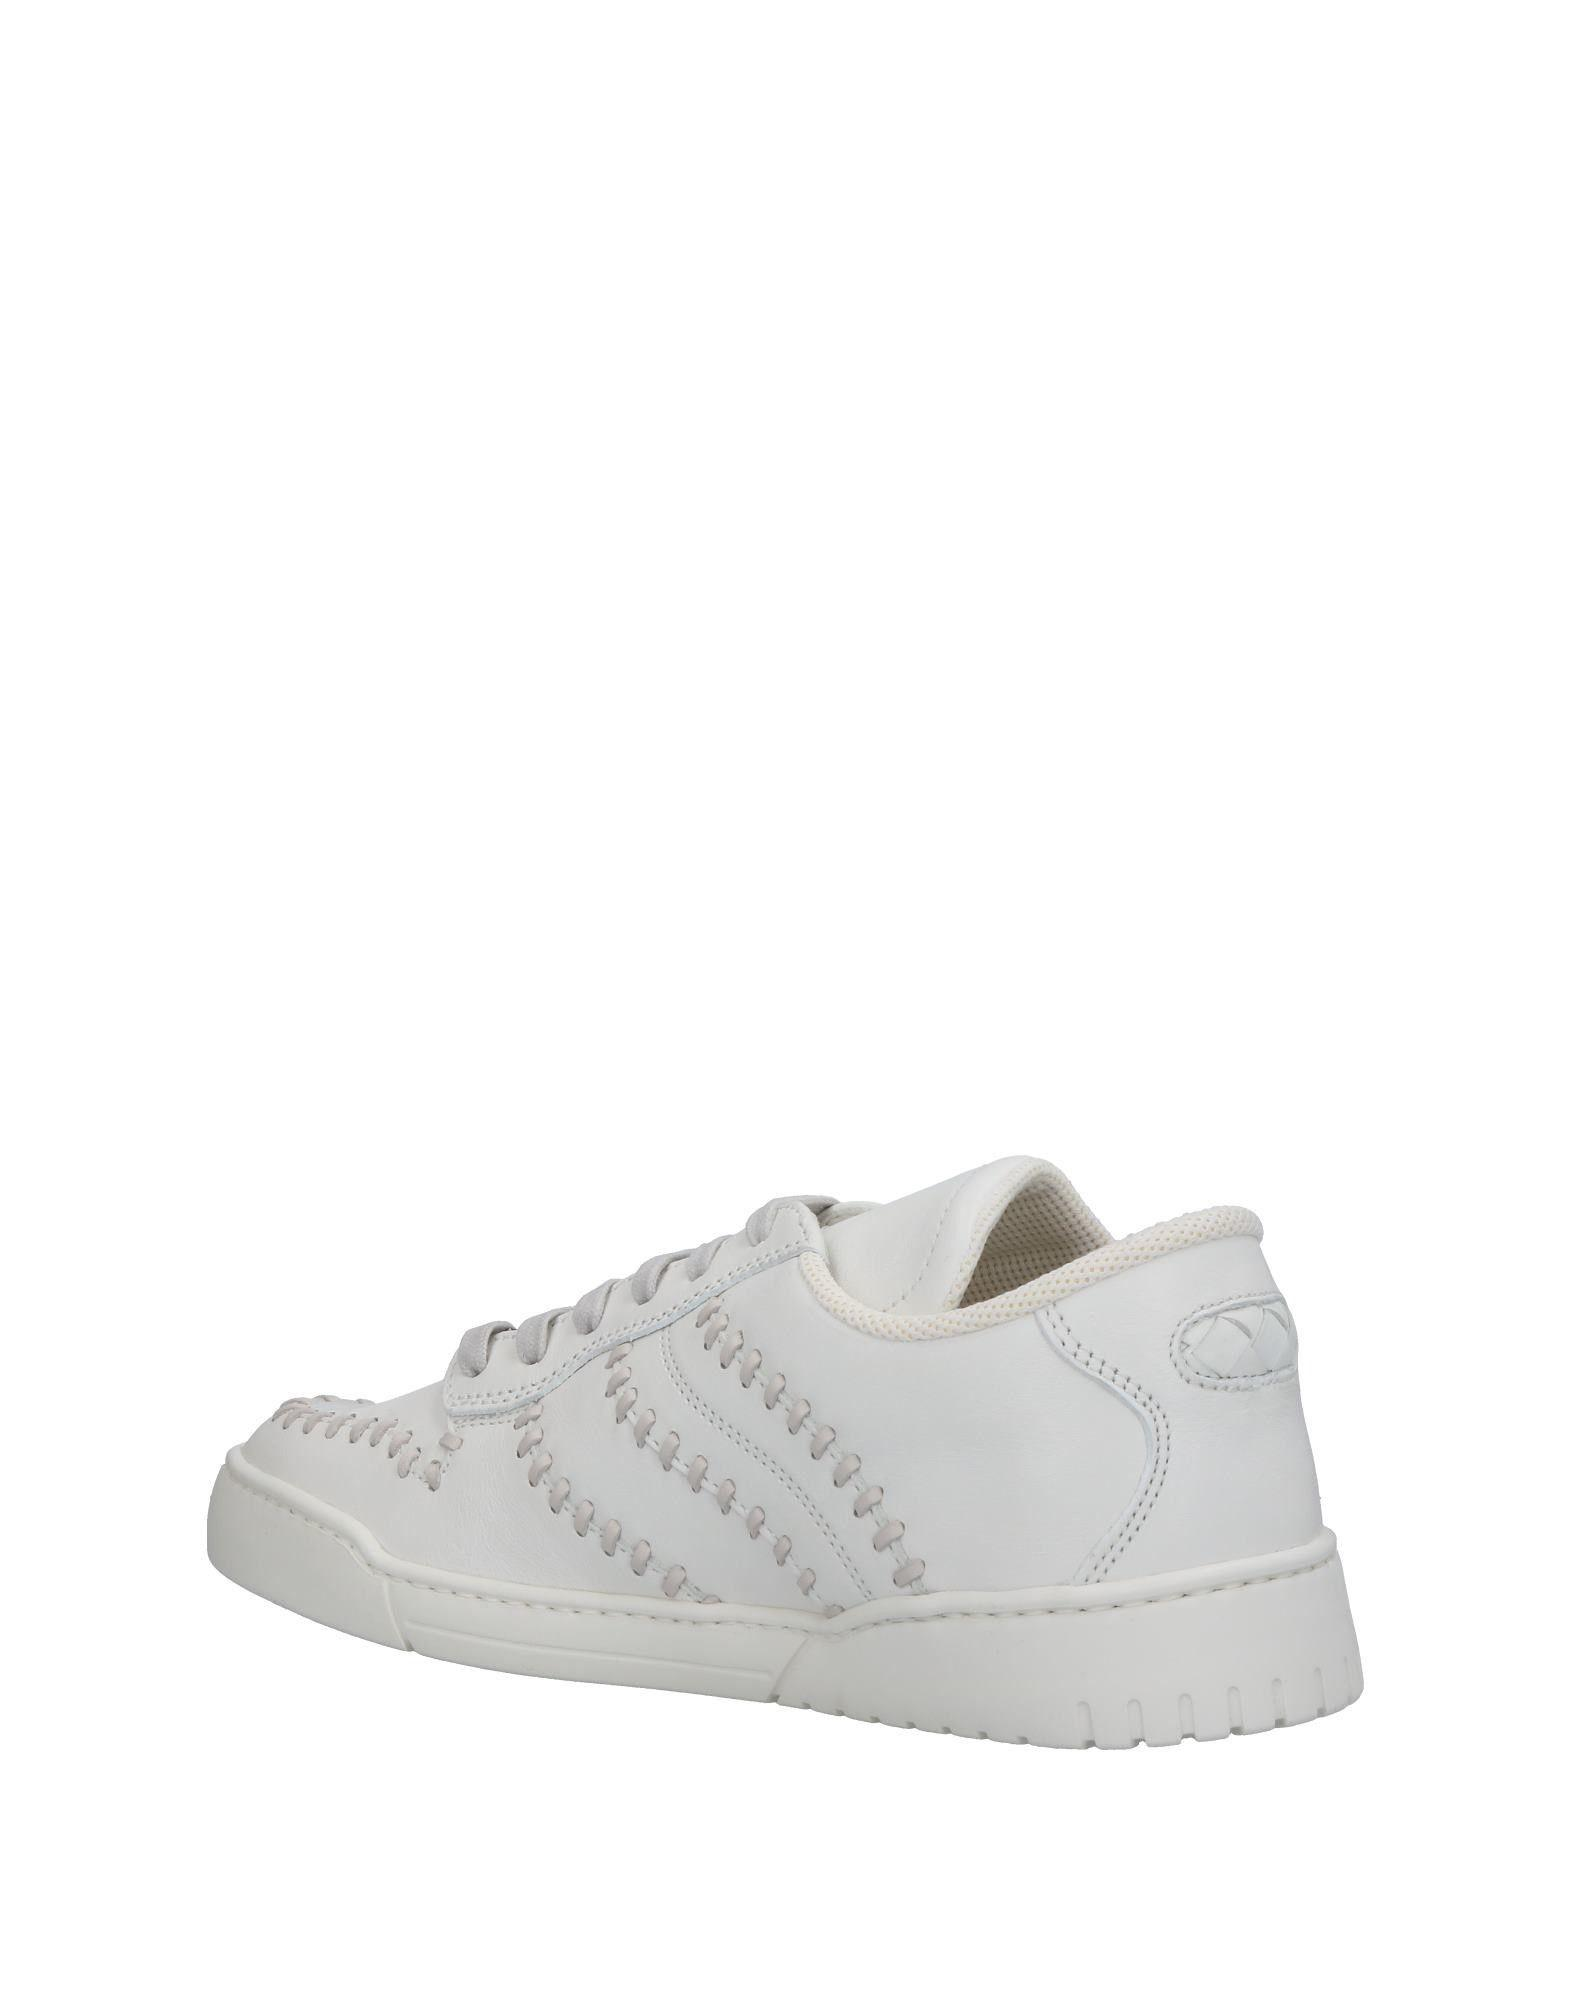 FOOTWEAR - Low-tops & sneakers Bottega Veneta Q6sZD